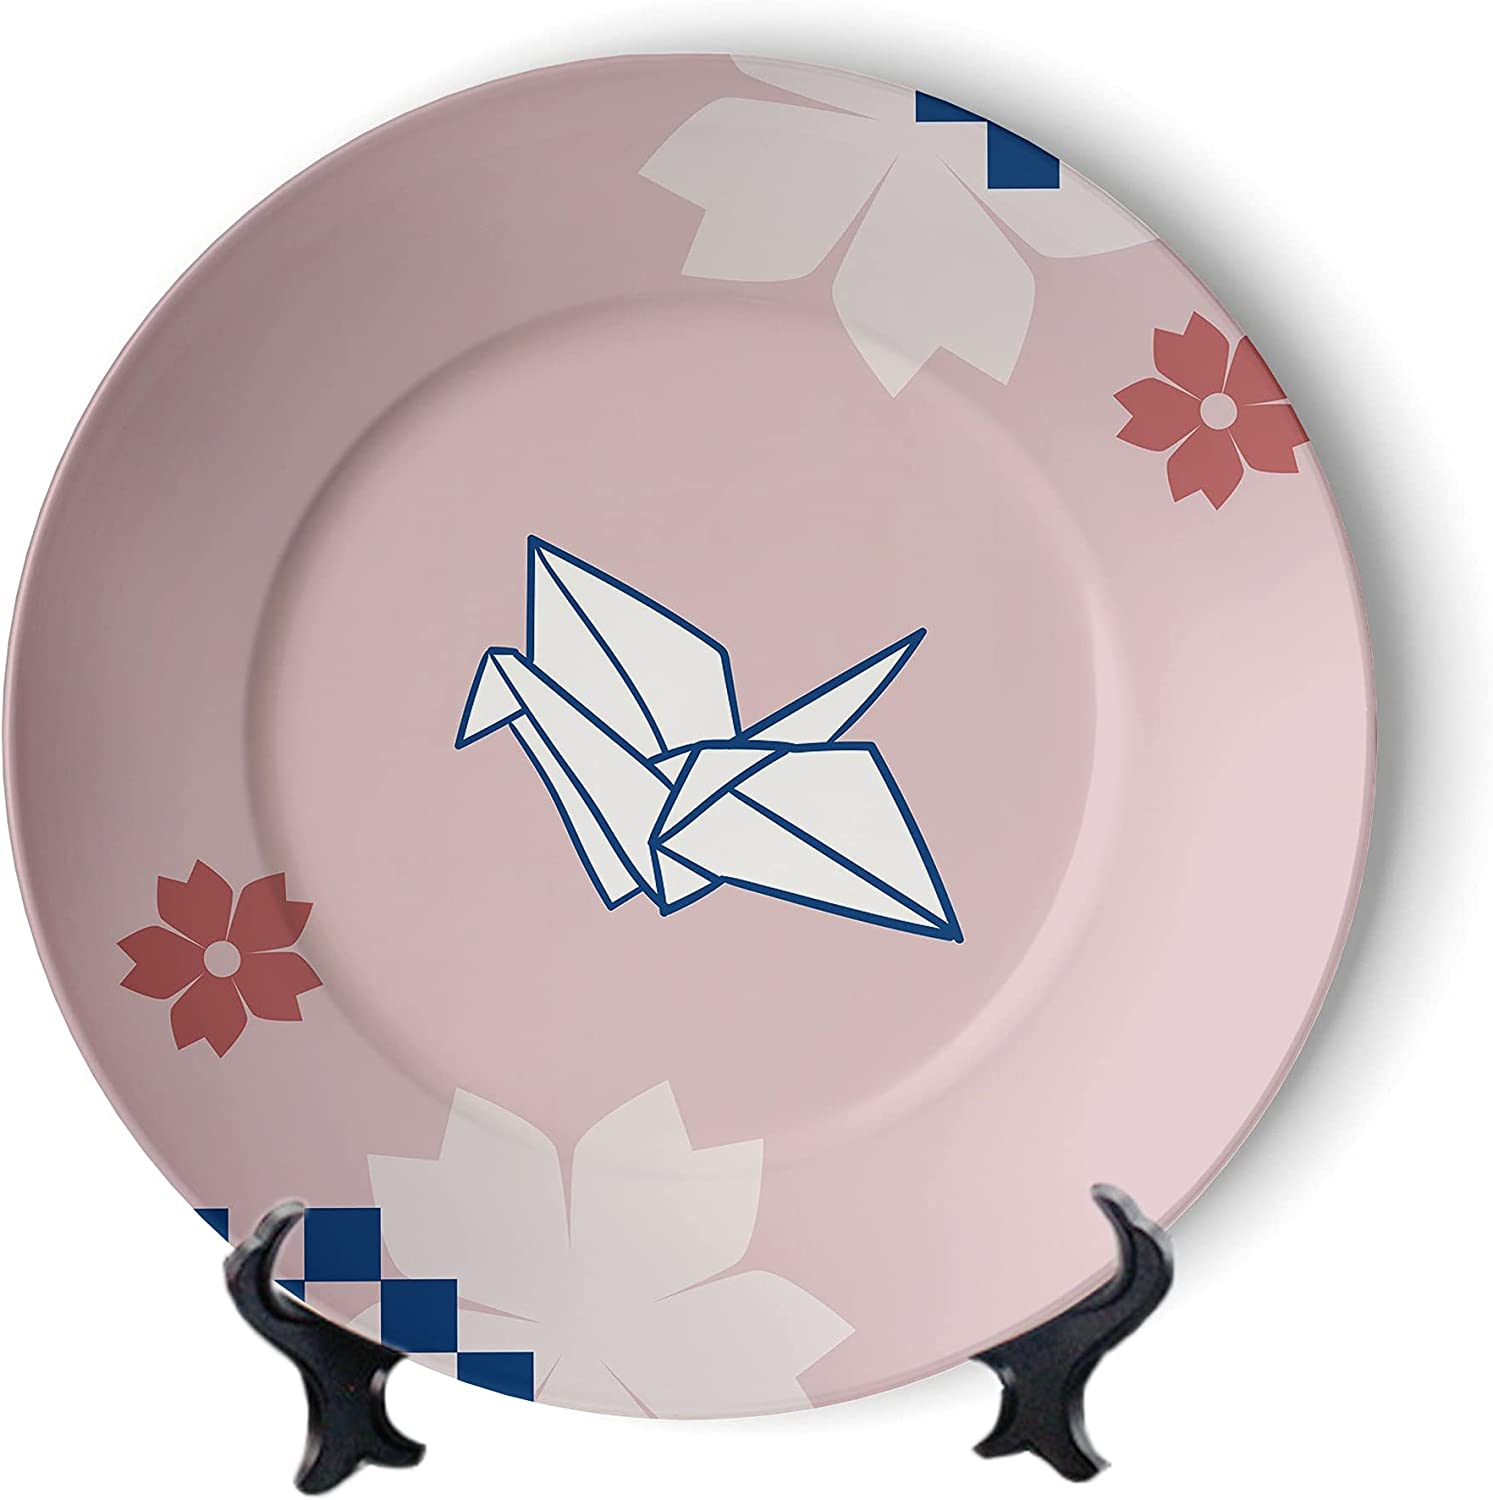 MOOMOO Paper Cranes Wall Hanging SALENEW very popular Pink Plate safety wi Panel Decorative